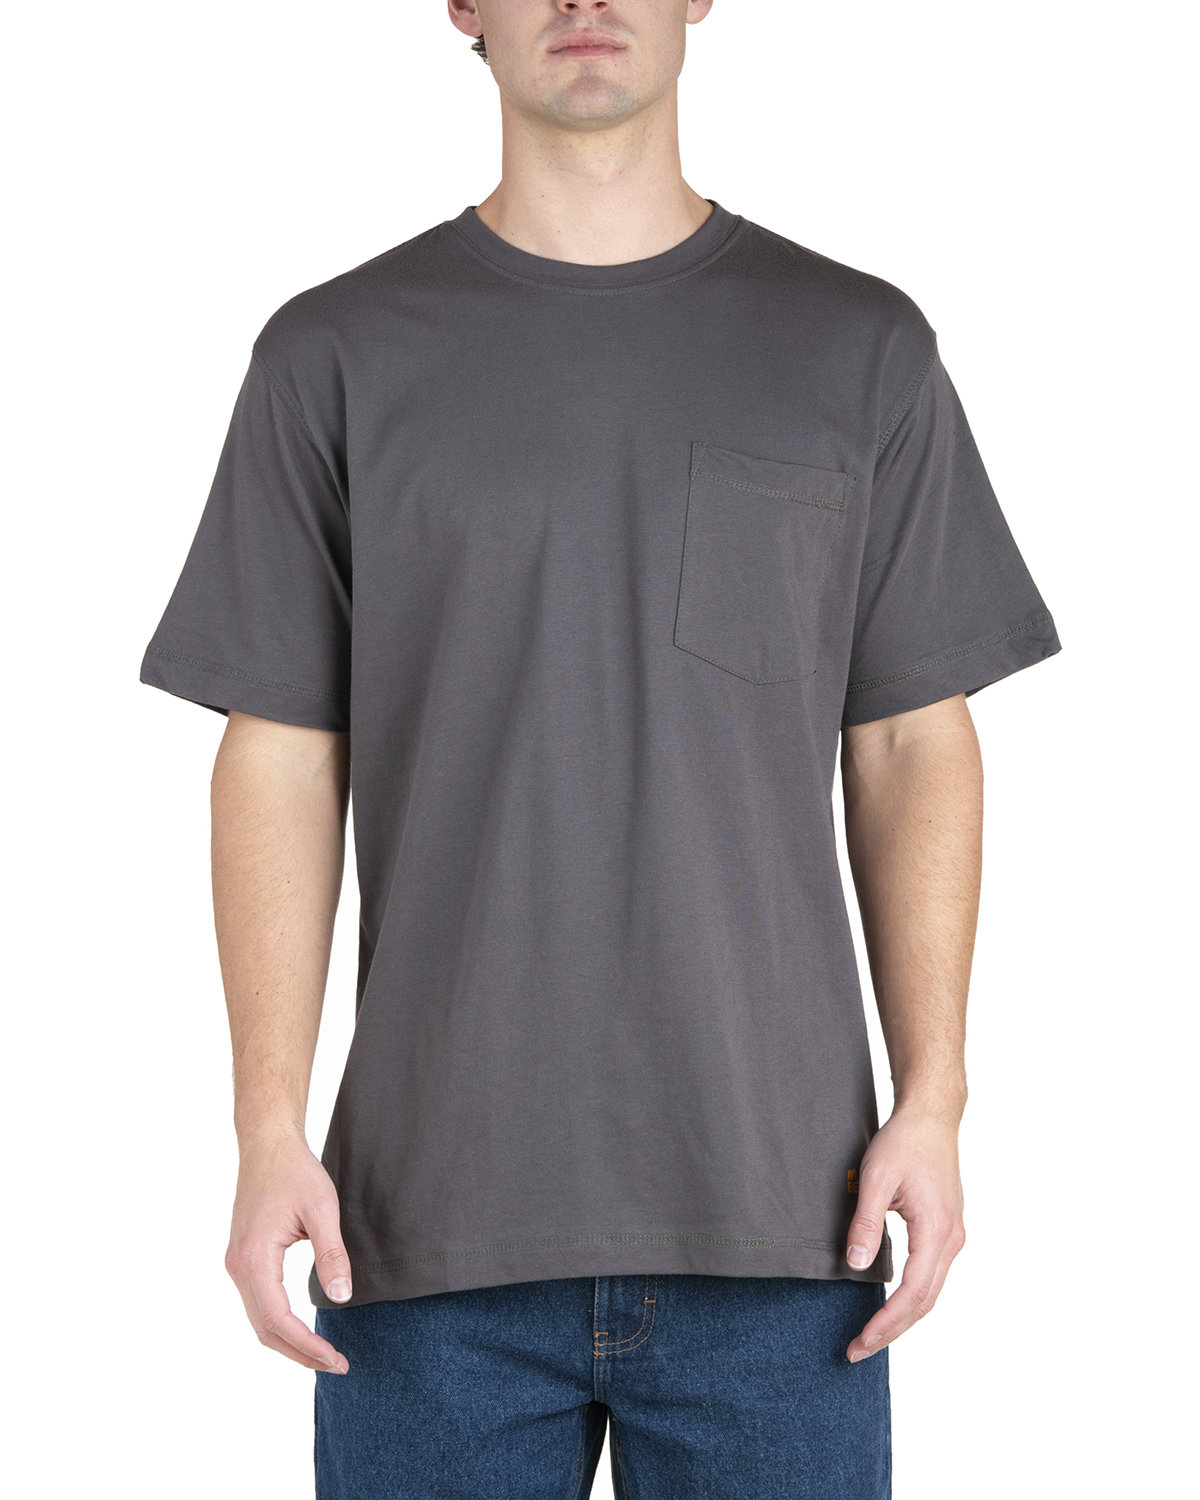 Berne Men's Lightweight Performance Pocket T-Shirt SLATE